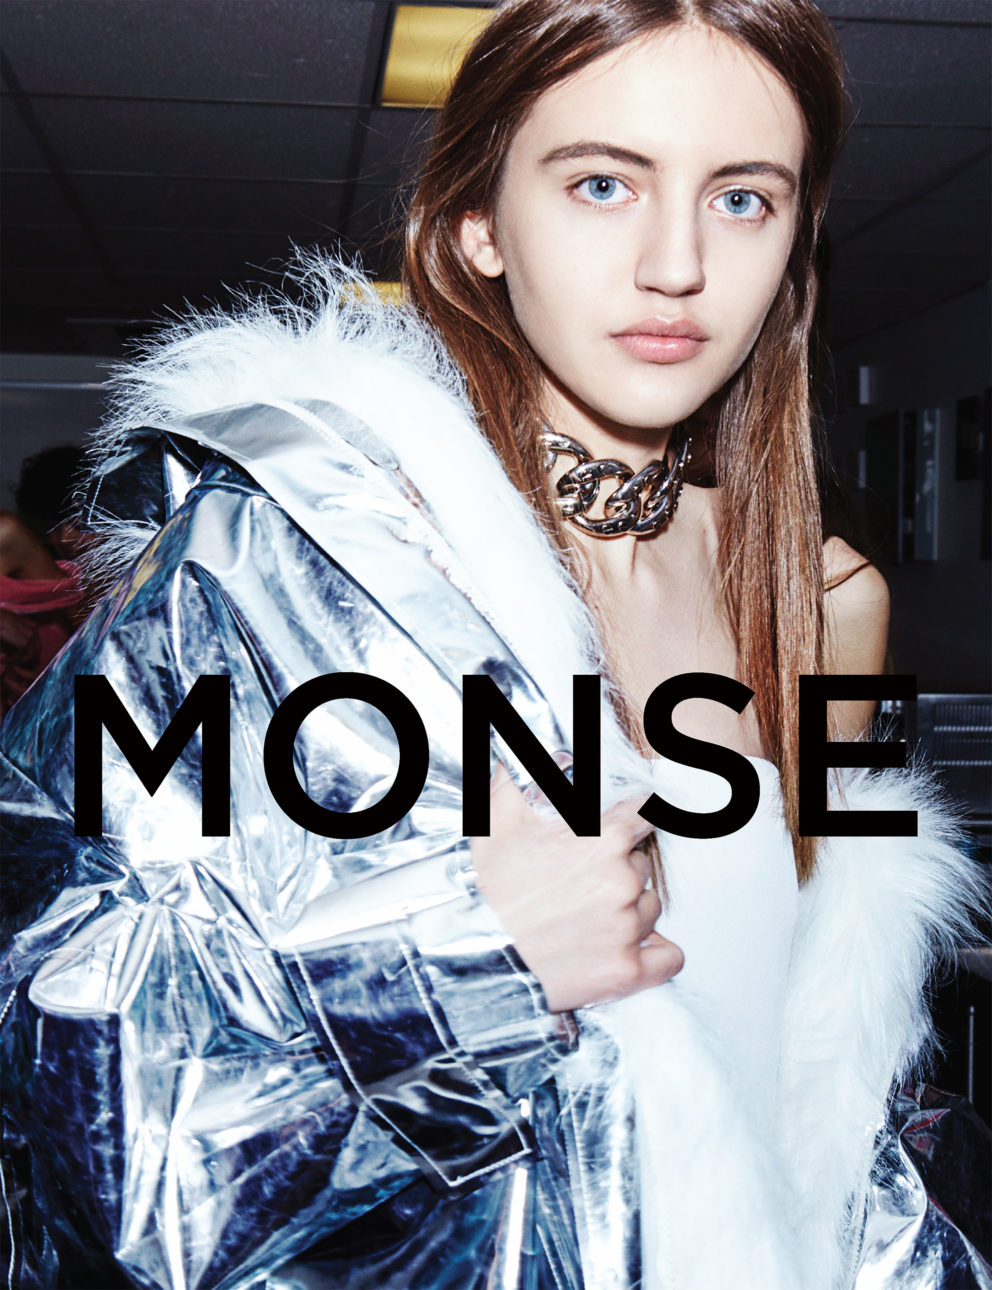 160212 Monse Wmag Ad Christian Hogstedt